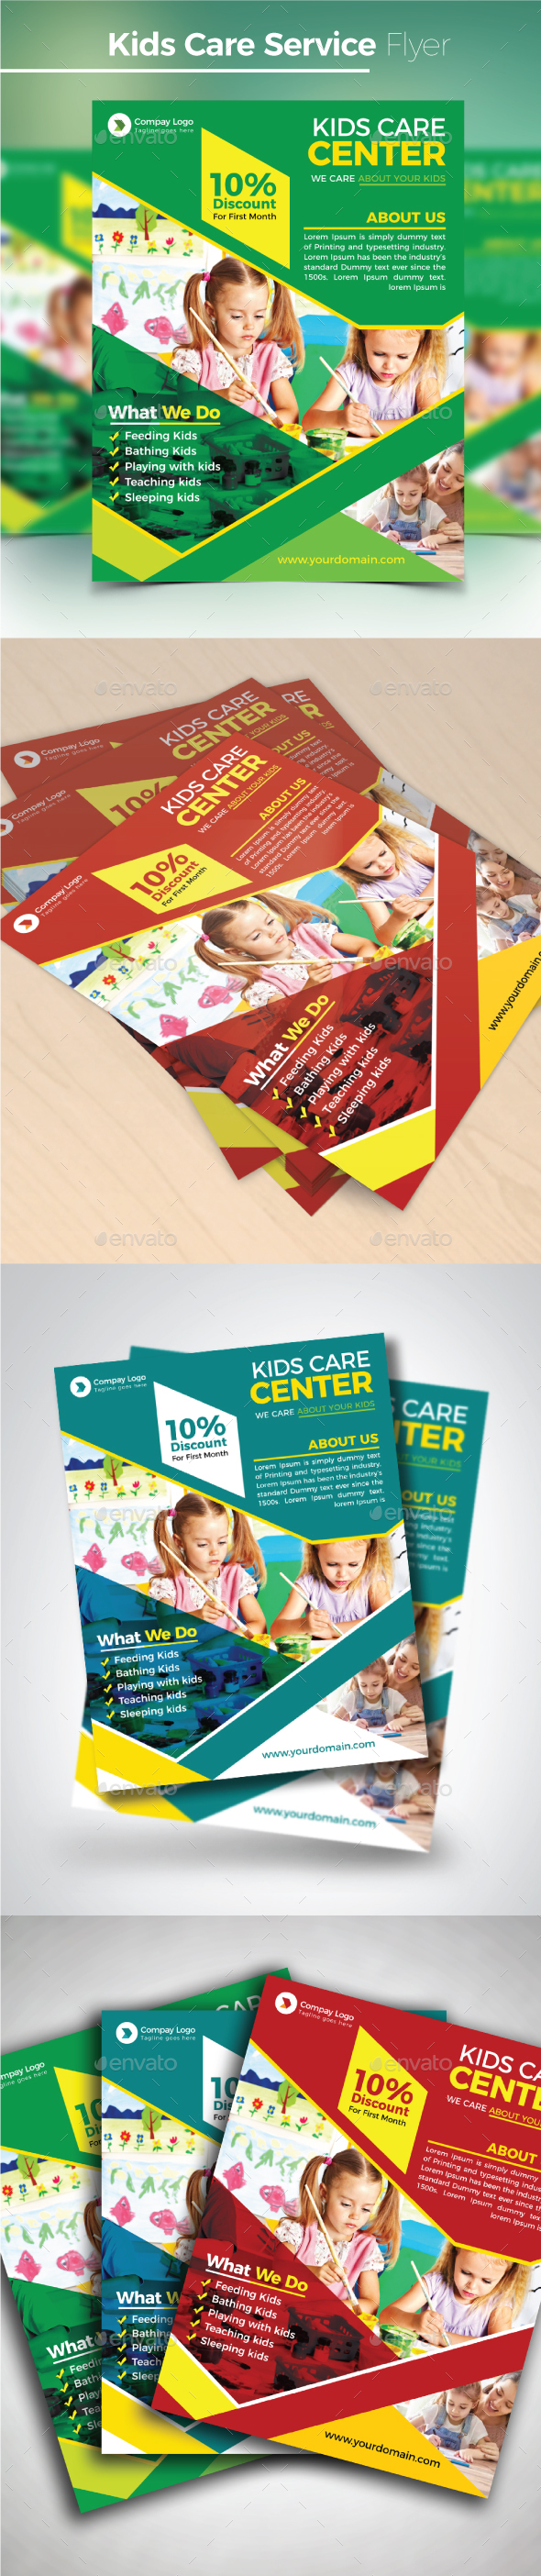 Kids Care Service Flyer - Commerce Flyers